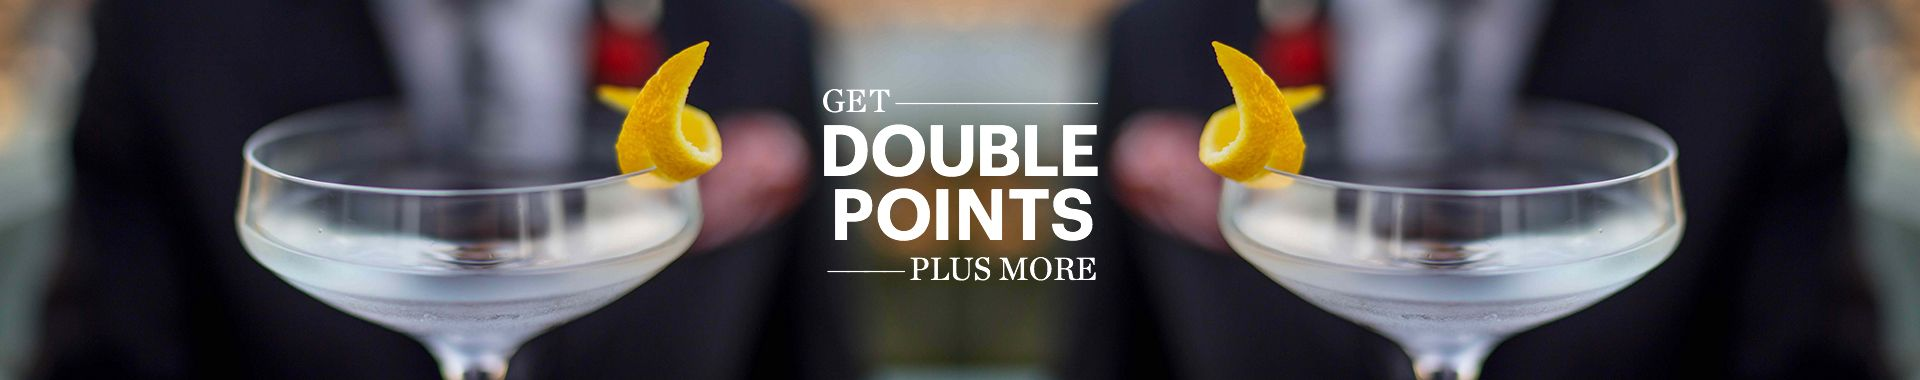 Earn More IHG Rewards Points - ZS Holdings Ltd.